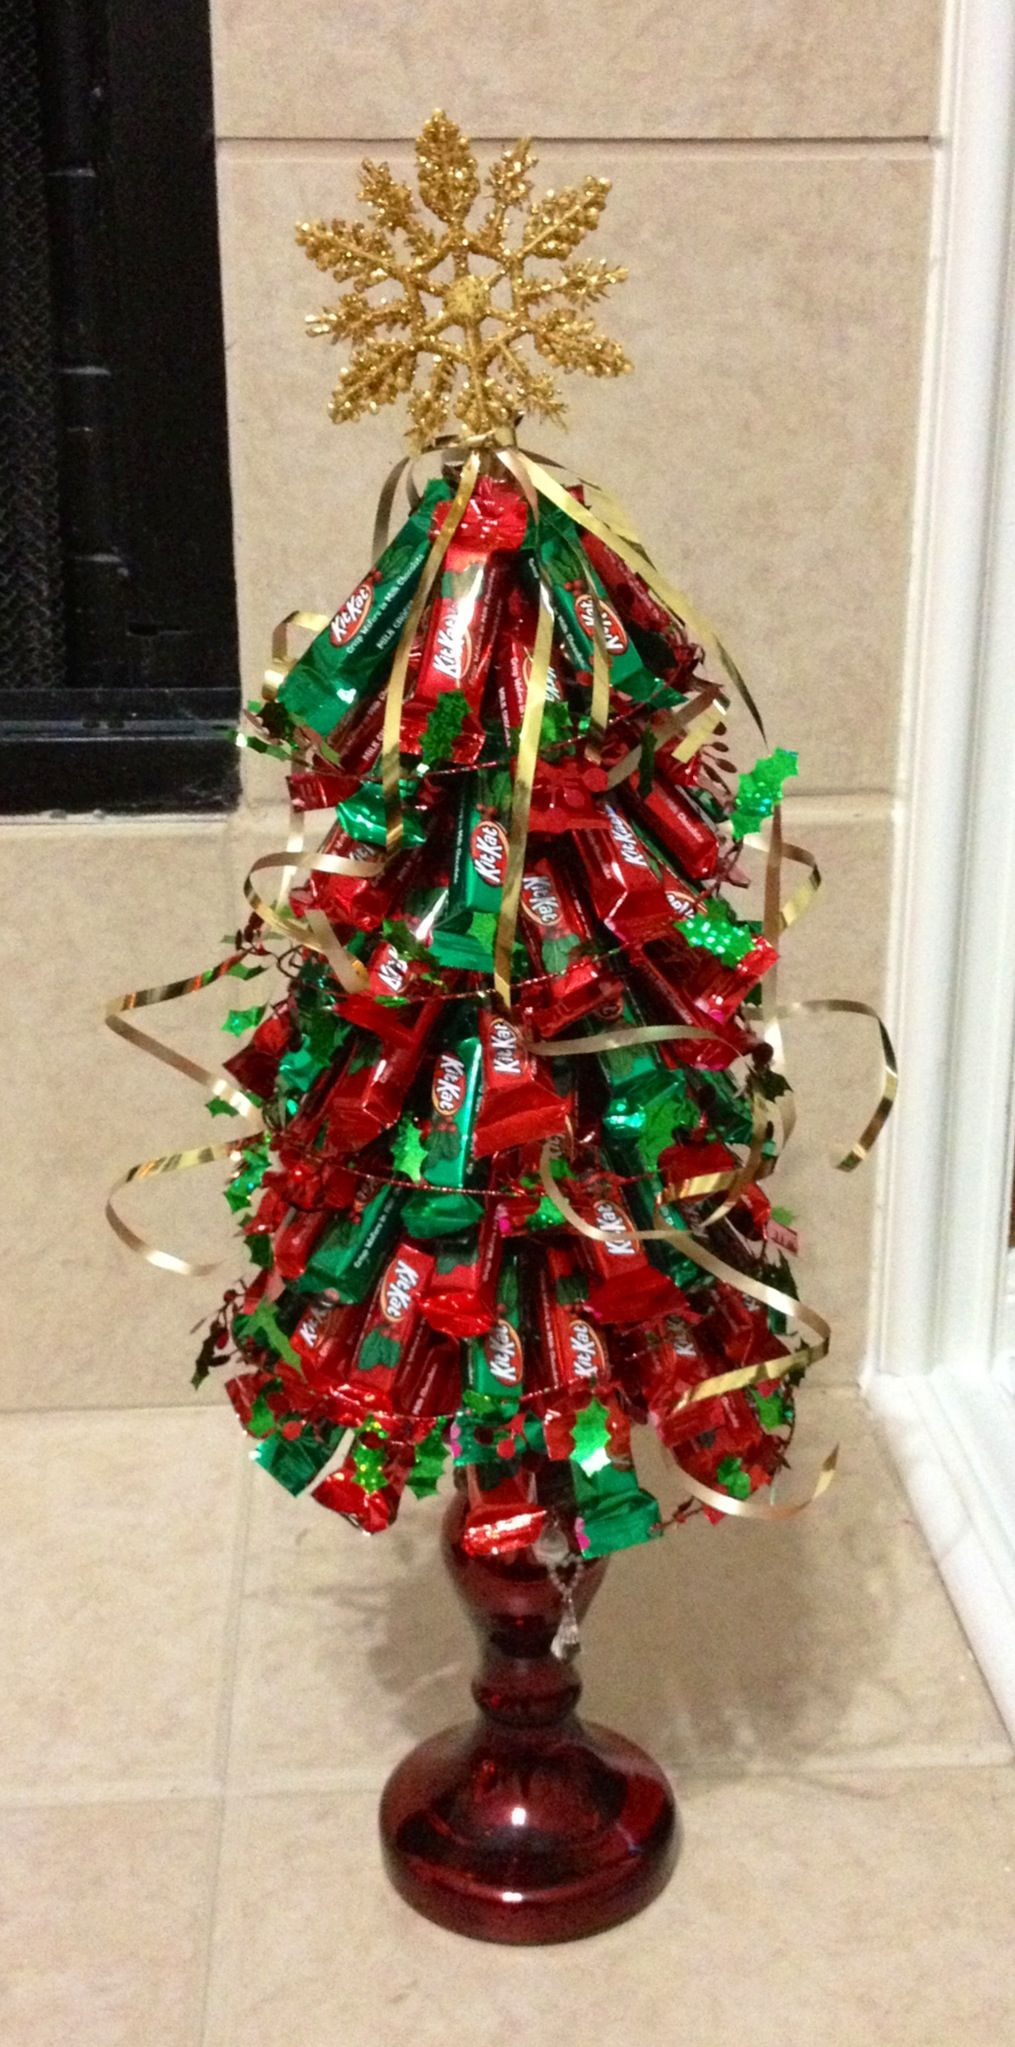 Kit Kat Christmas tree! | Holiday food | Pinterest | Christmas ...